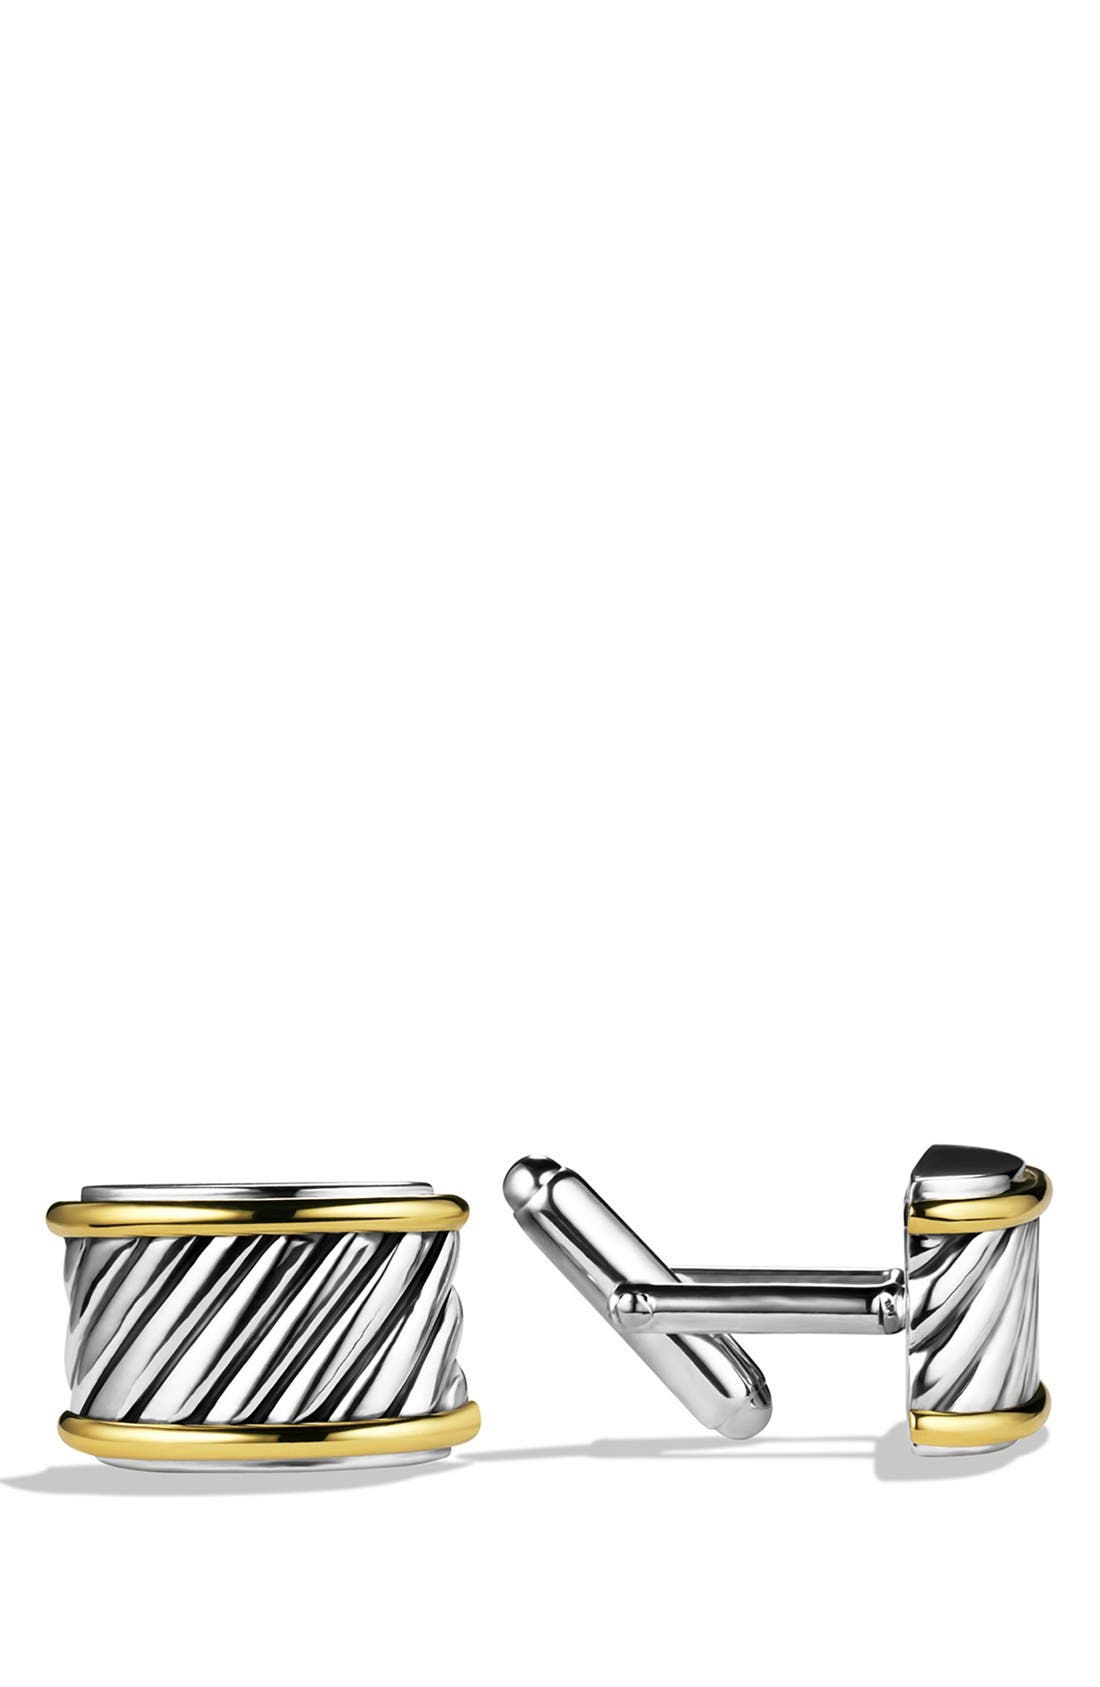 DAVID YURMAN Cable Cigar Band Cuff Links with Gold